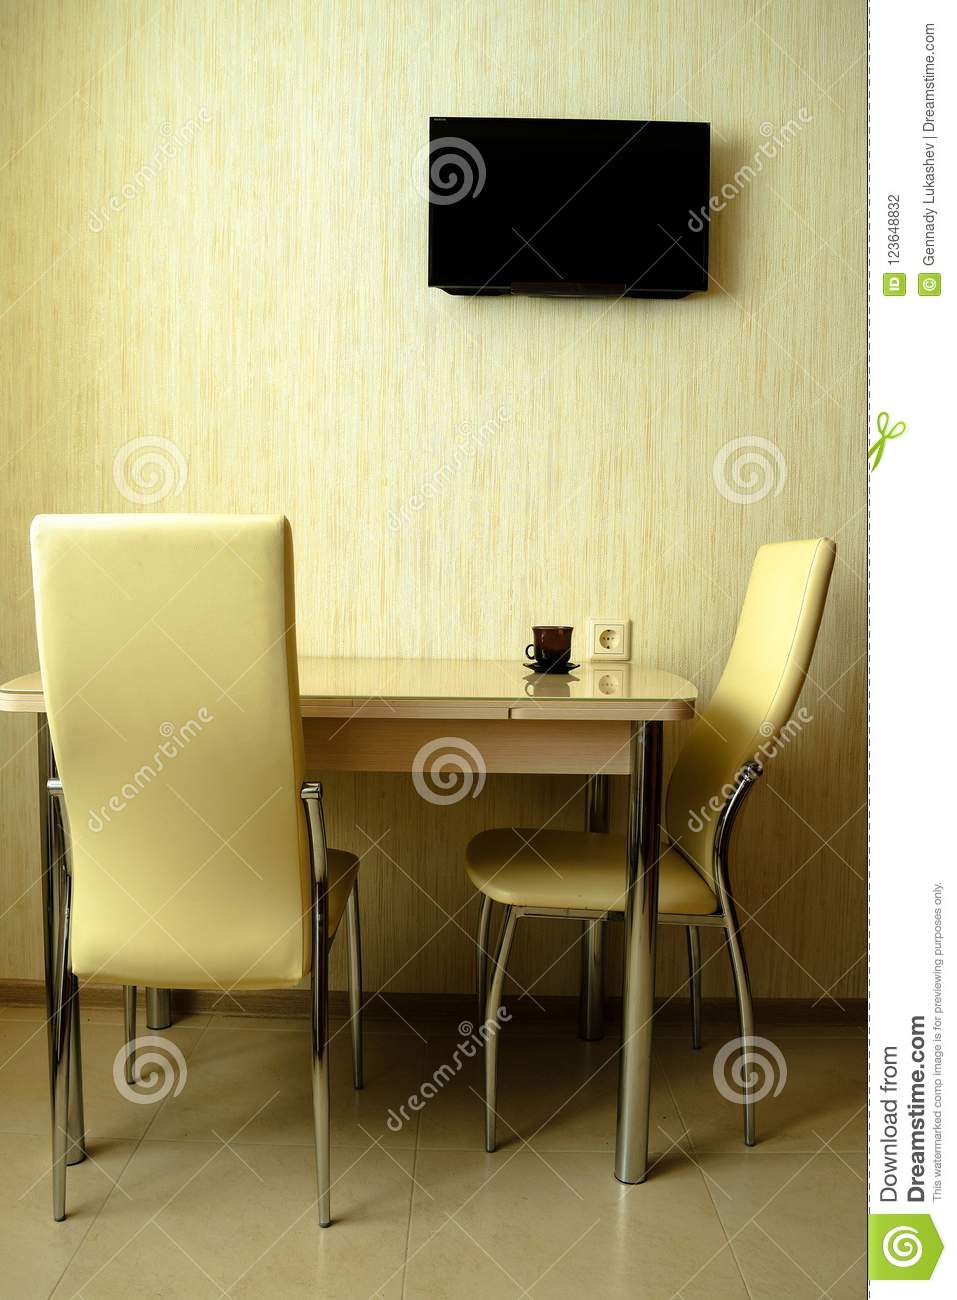 Light Modernist Furniture By The Light Wall Stock Photo - Image of ...